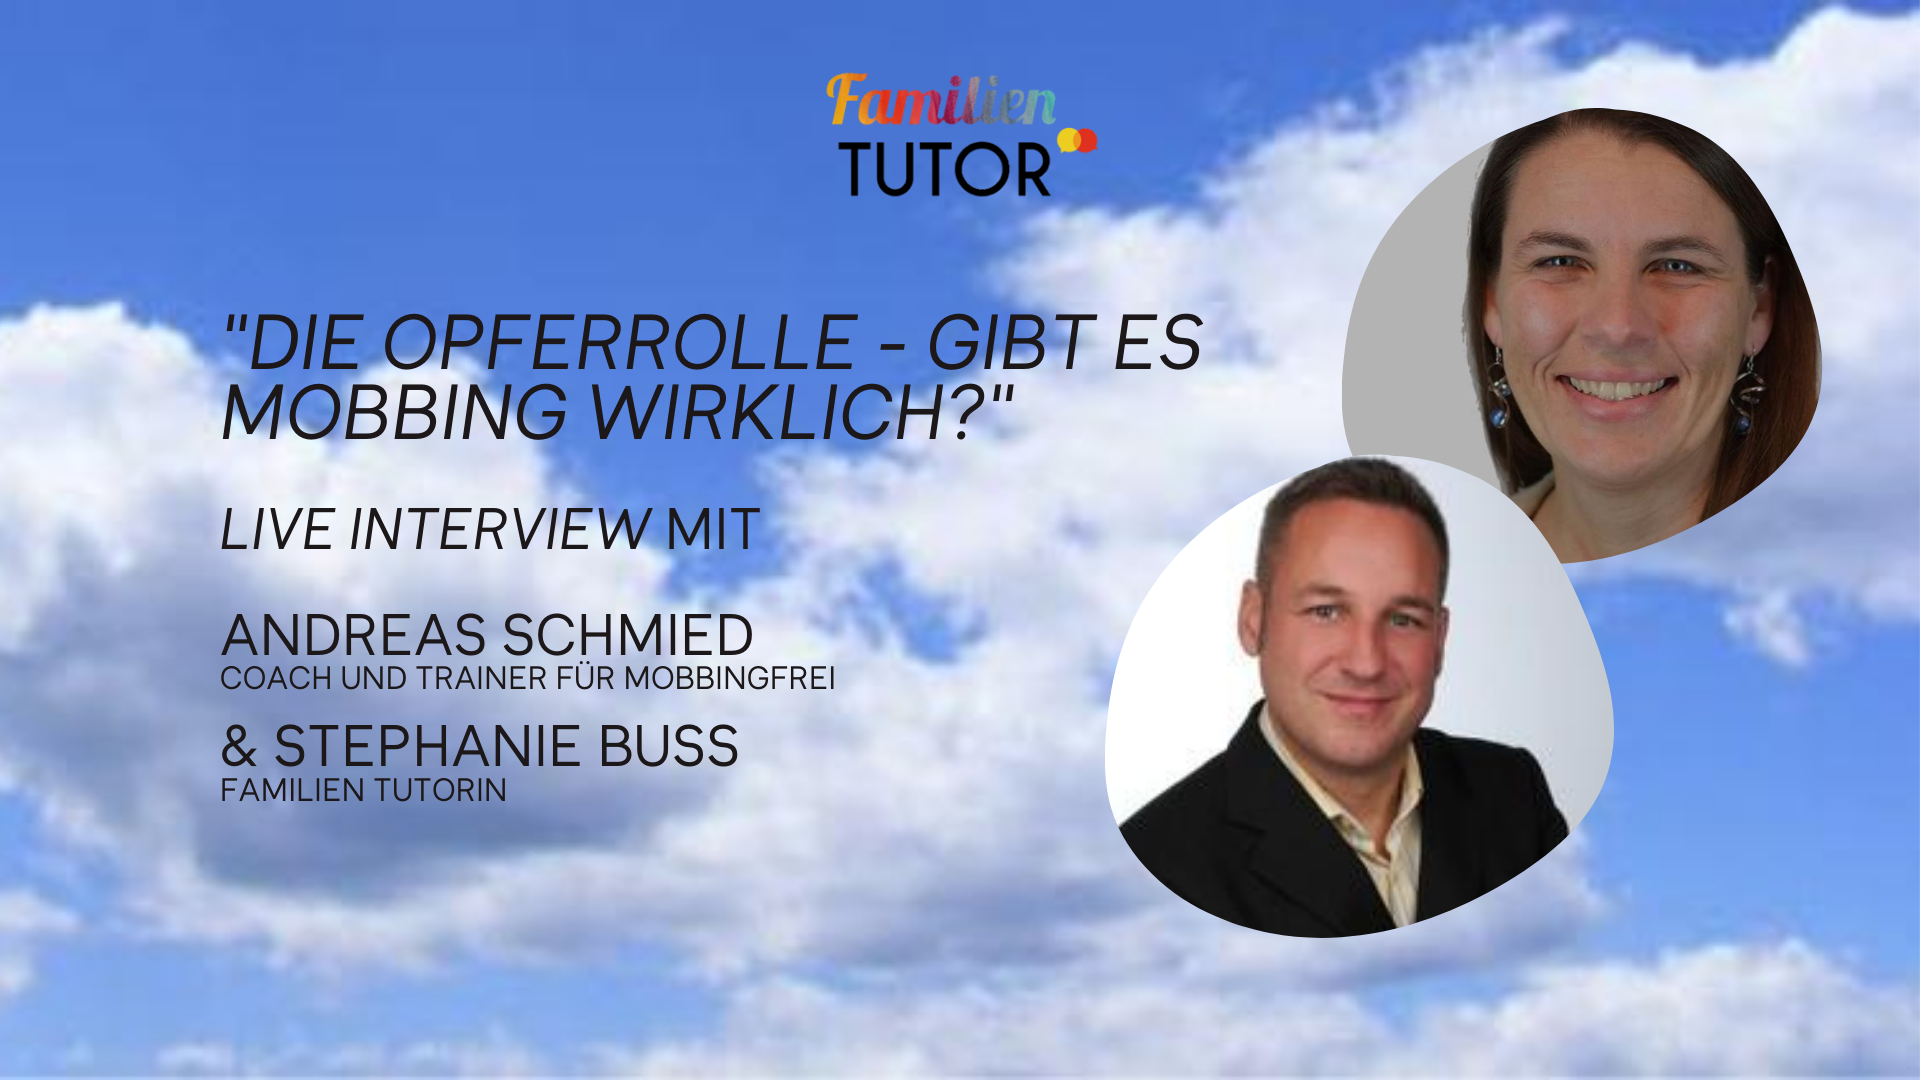 Family Friday Tutorial mit Andreas Schmied